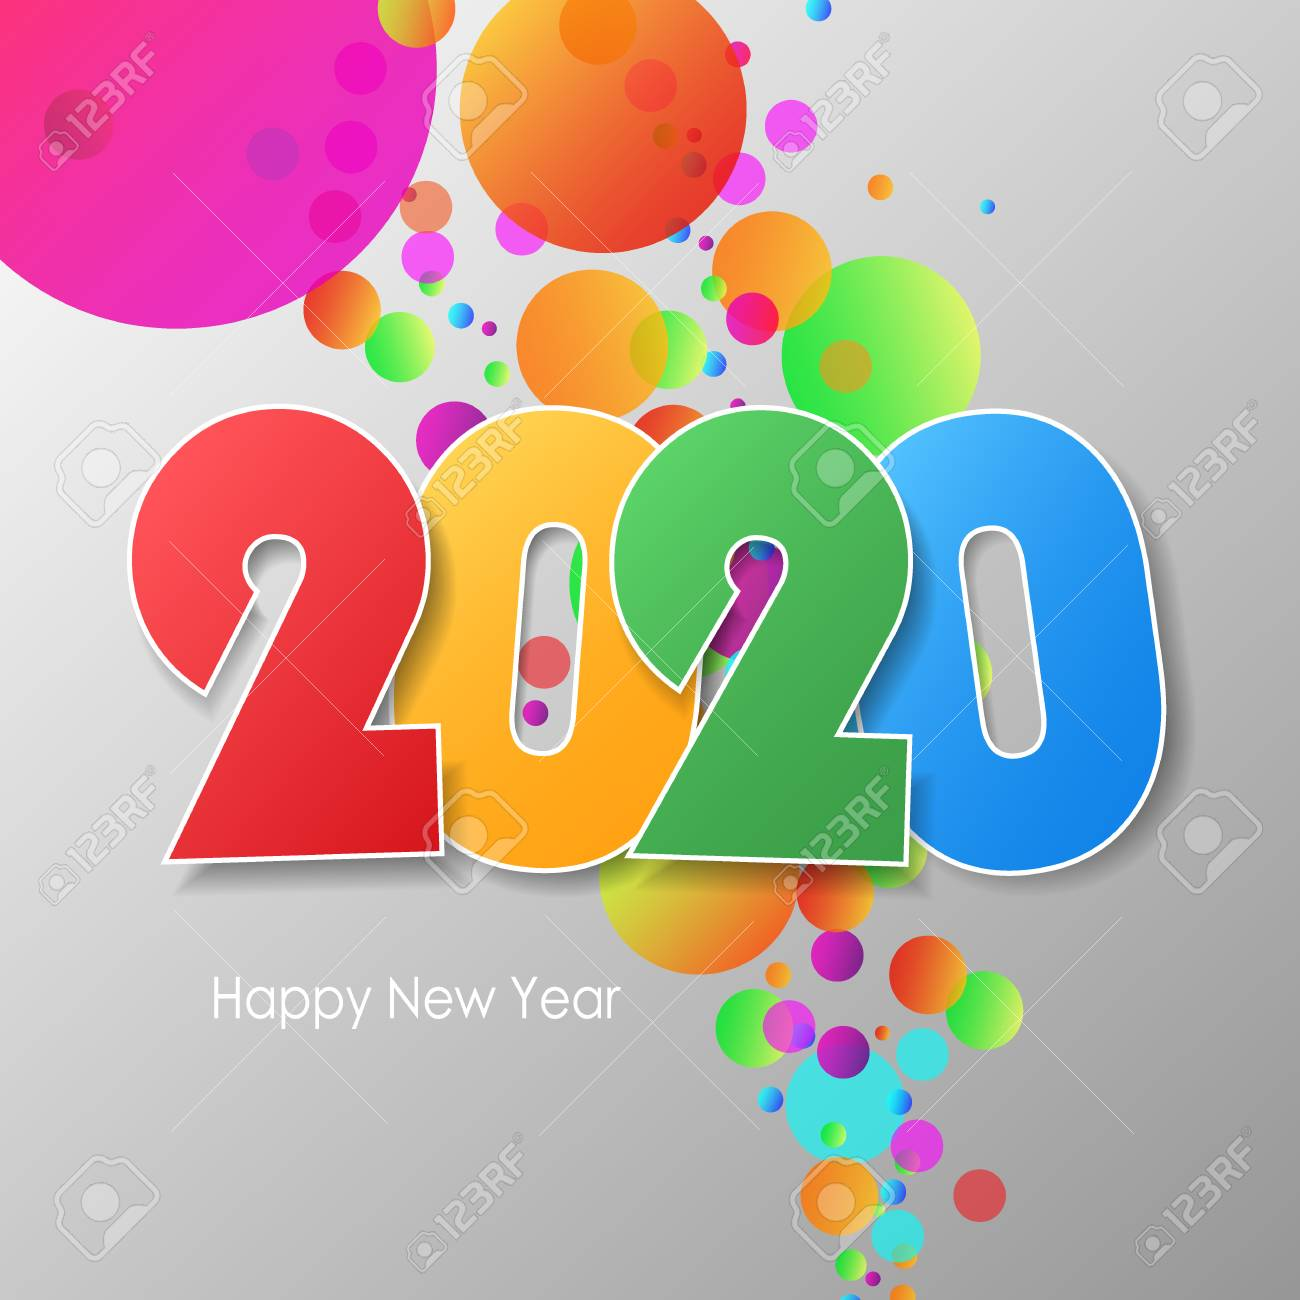 Simple Greeting Card Happy New Year 2020 Vector Illustration